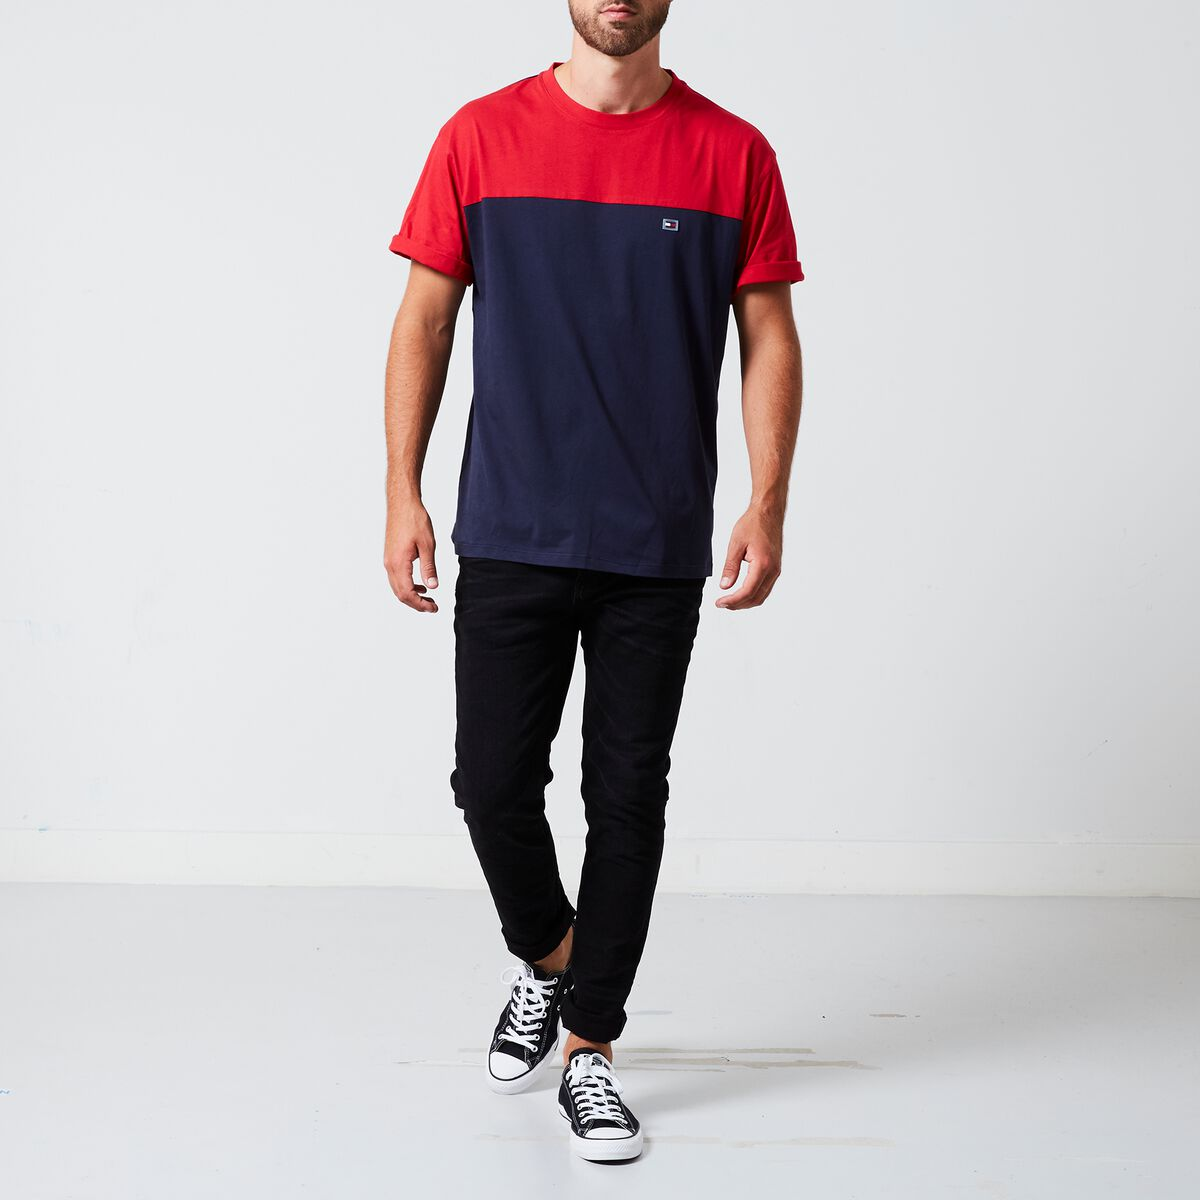 f9c91057 Men T-shirt Tommy Hilfiger True tommy Red Buy Online